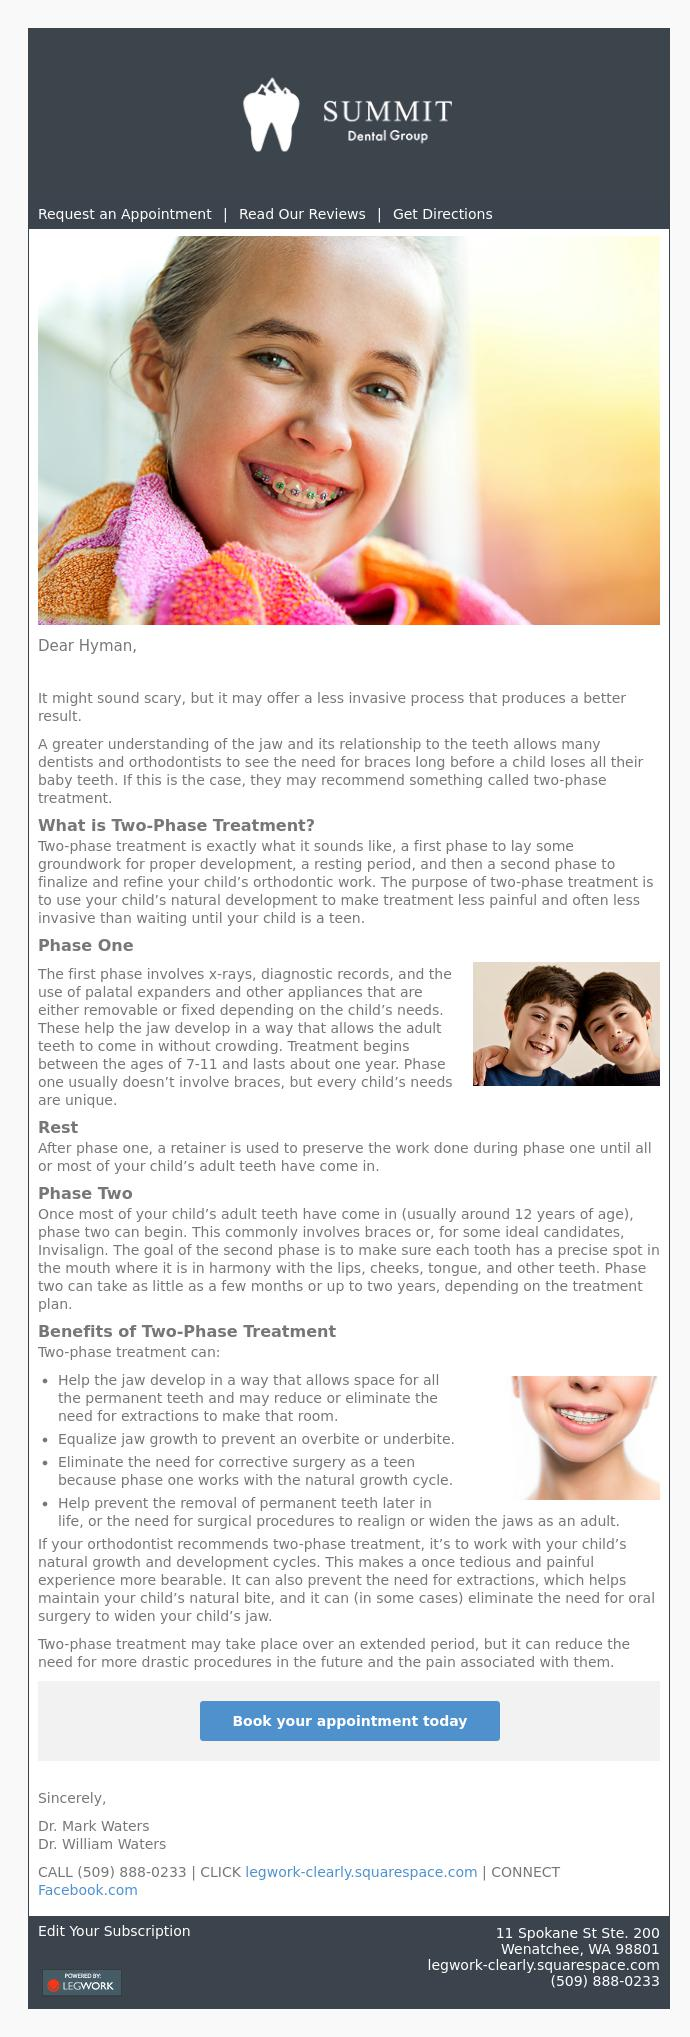 2019-july-non-web-campaign-orthodontic-email.jpg